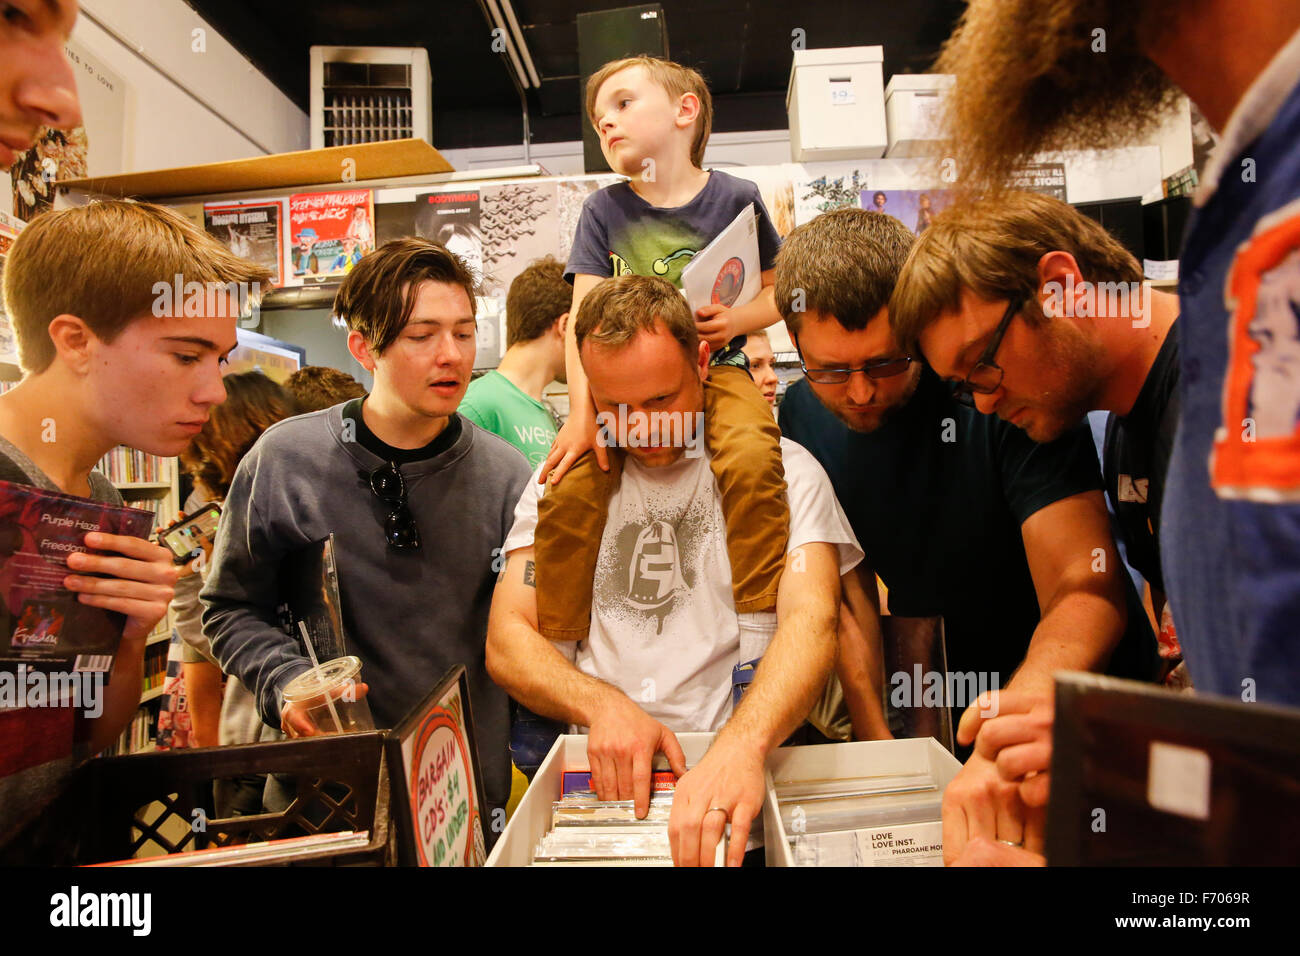 Vinyl record shoppers for Record Store Day 2015 pack locally owned record store Landlocked Records. (Photo by Jeremy - Stock Image